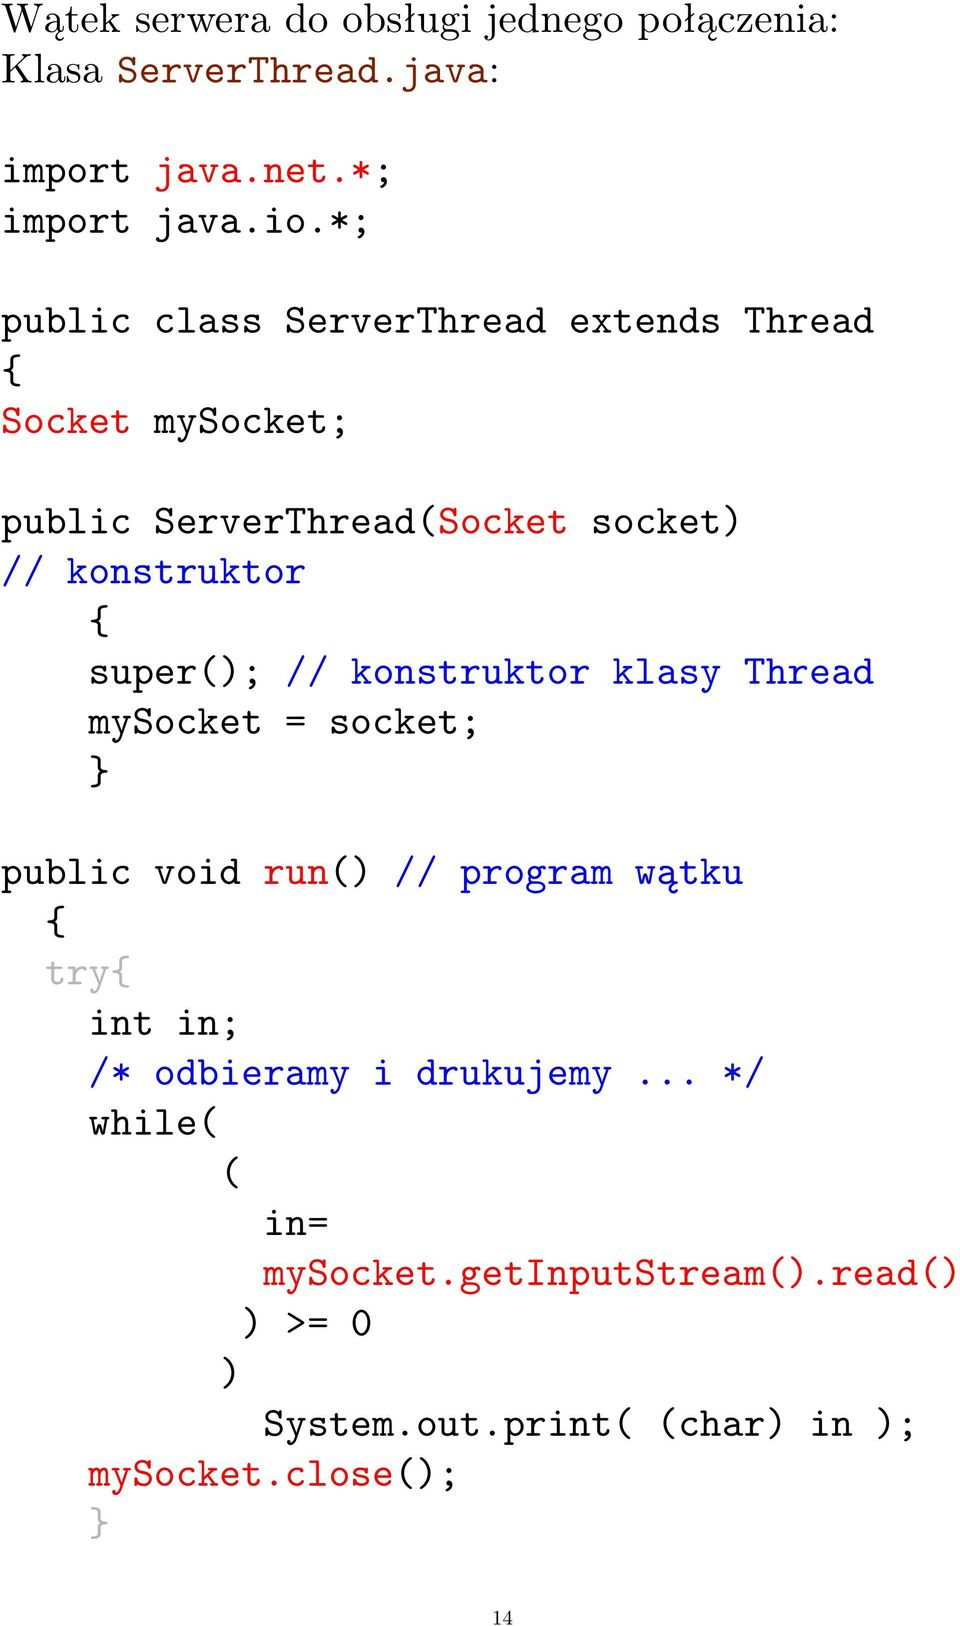 { super( // konstruktor klasy Thread mysocket = socket; public void run() // program wątku { try{ int in; /*